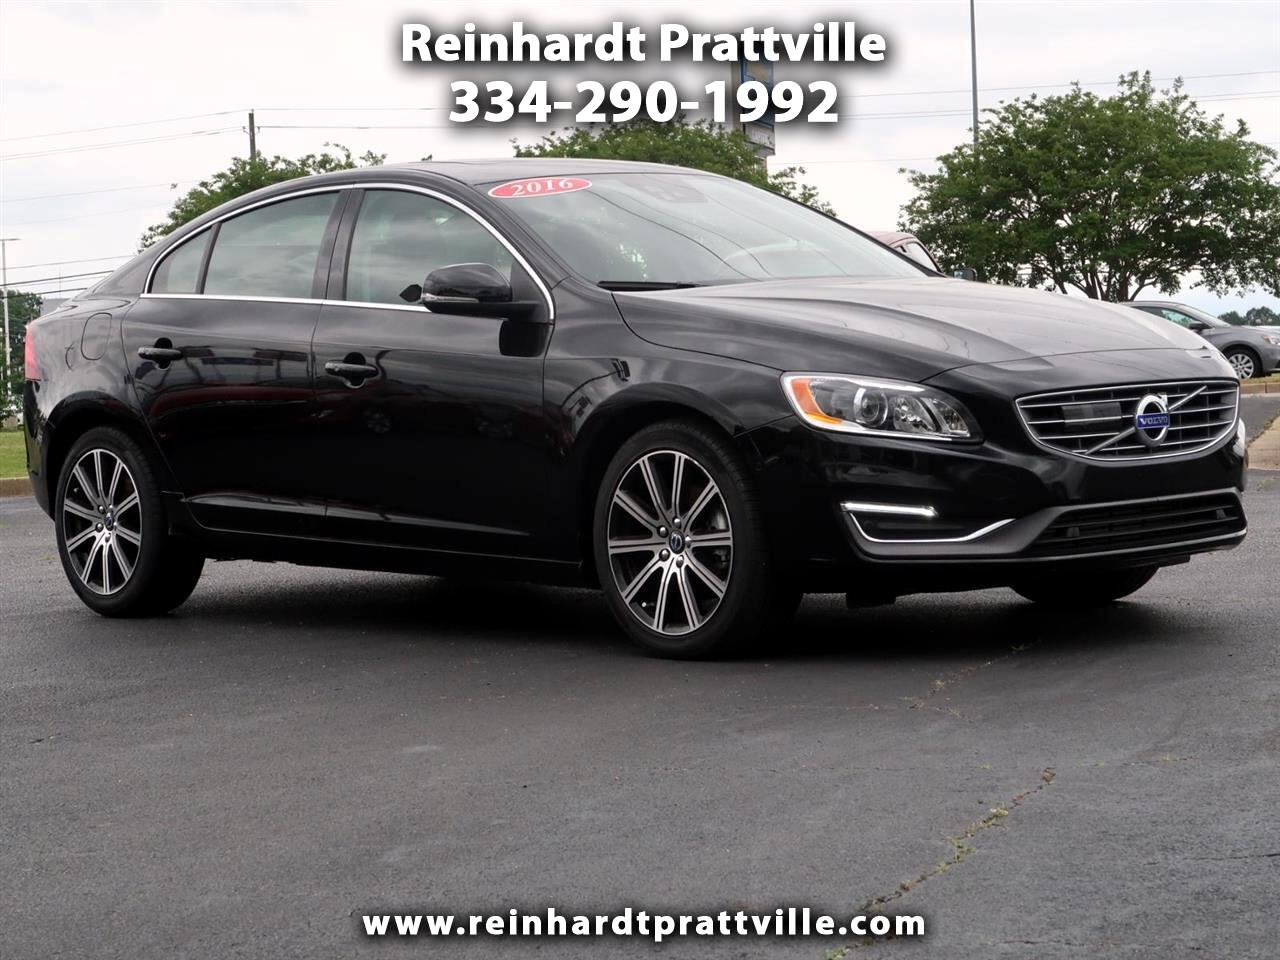 2016 Volvo S60 Inscription 4dr Sdn T5 Drive-E Platinum FWD